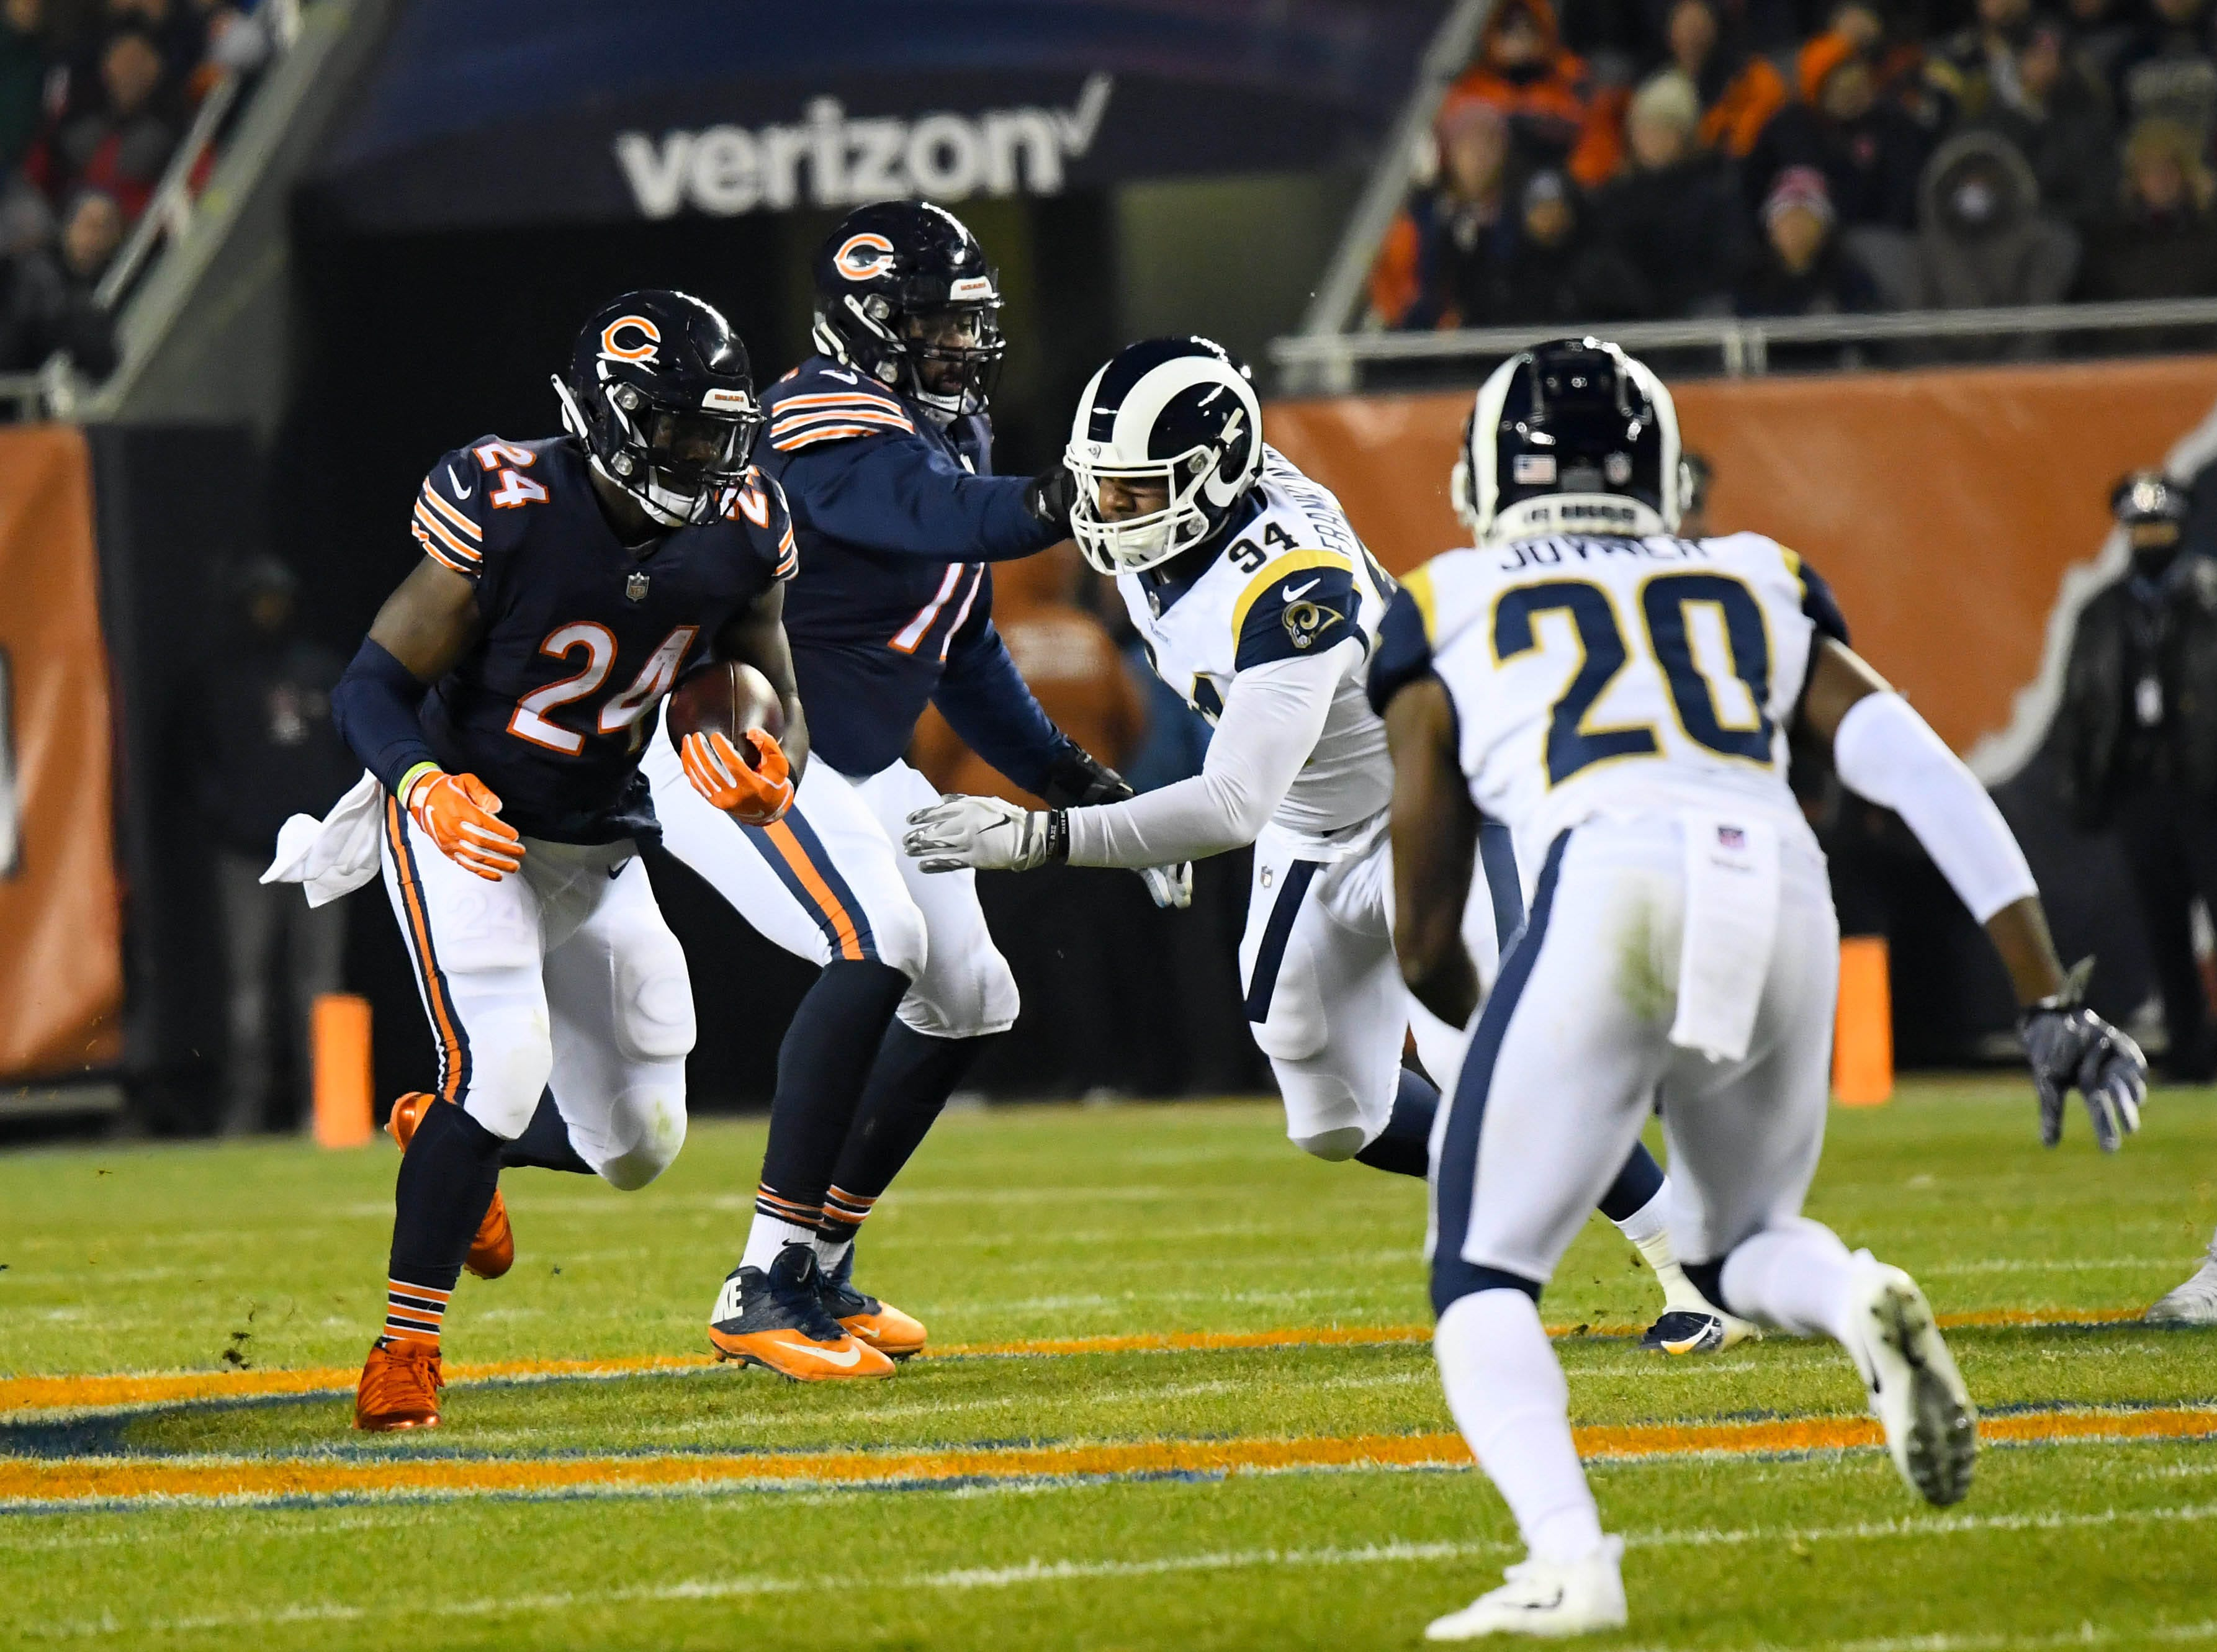 Dec 9, 2018; Chicago, IL, USA; Chicago Bears running back Jordan Howard (24) rushes the ball against Los Angeles Rams free safety Lamarcus Joyner (20) during the first quarter at Soldier Field. Mandatory Credit: Mike DiNovo-USA TODAY Sports